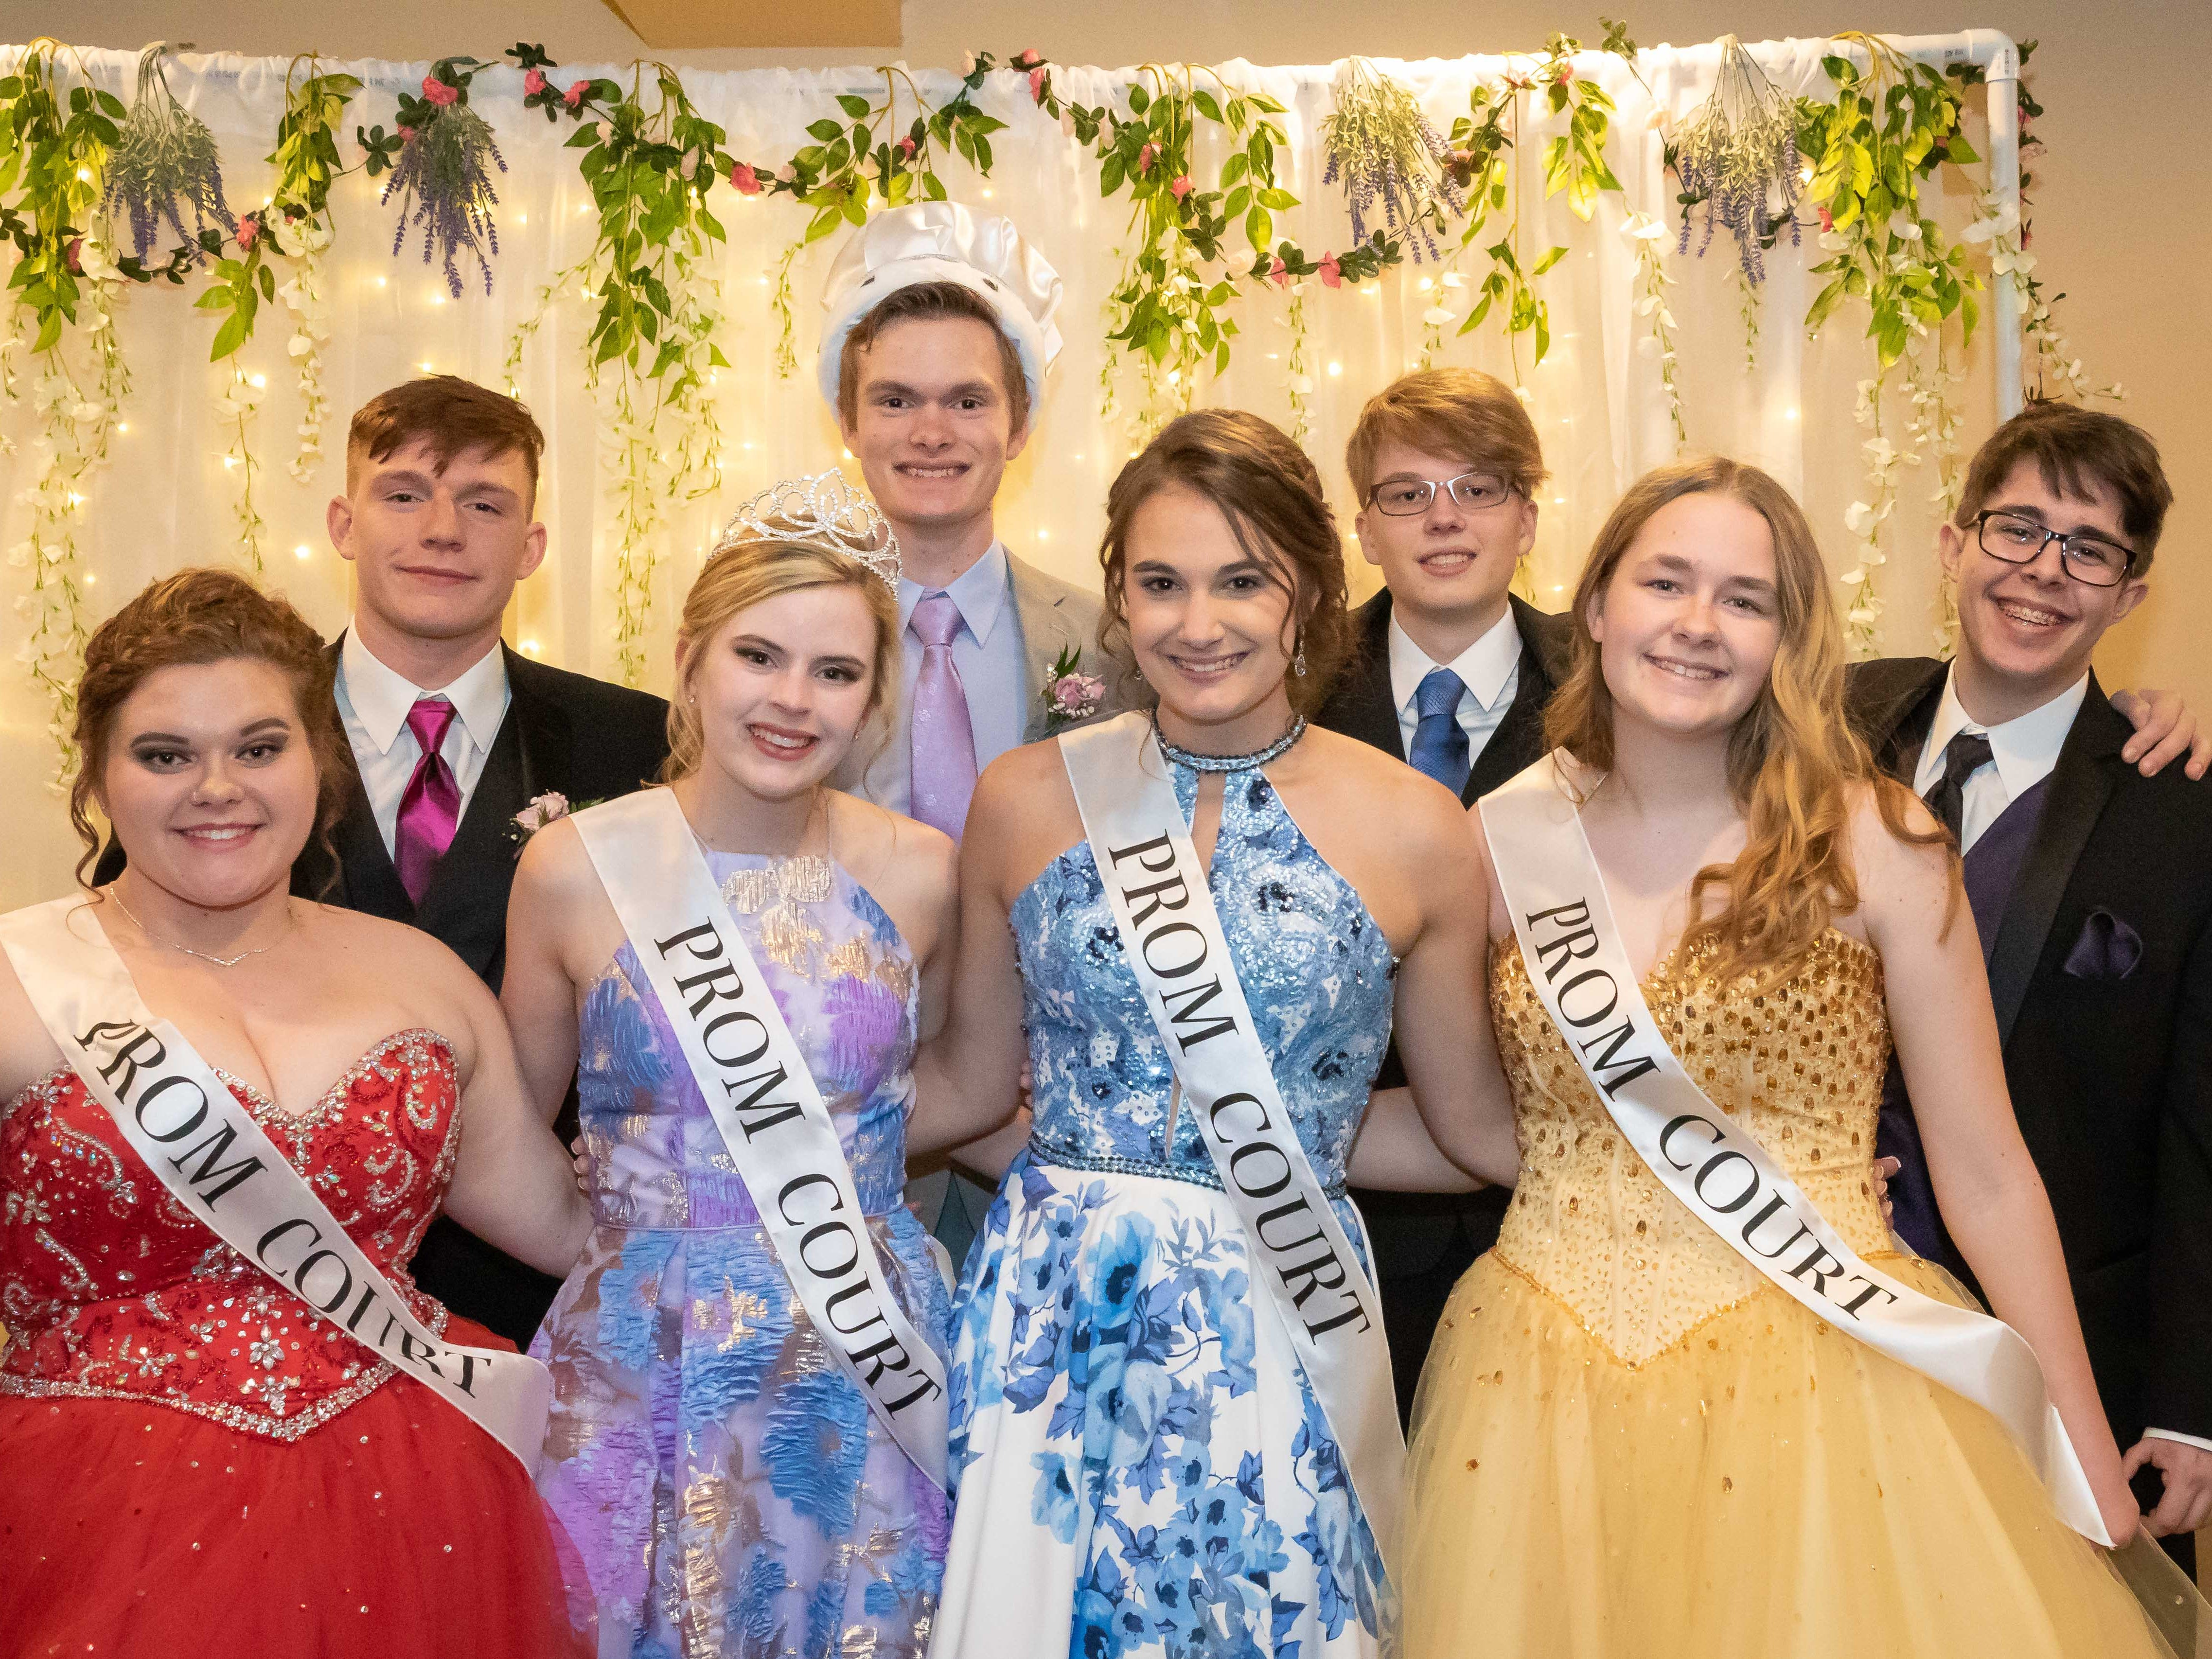 Members of the 2019 John Edwards High School prom court were Morgan Enerson, Elijah Bristow, queen Molly McCarthy, king Derek Coates, Brooklynn Ksionek, Andrew Moos, Carleana Franck and Trenton Kniprath. The prom was held Saturday, April 27, 2019, at the Wisconsin Rapids Elks Club.